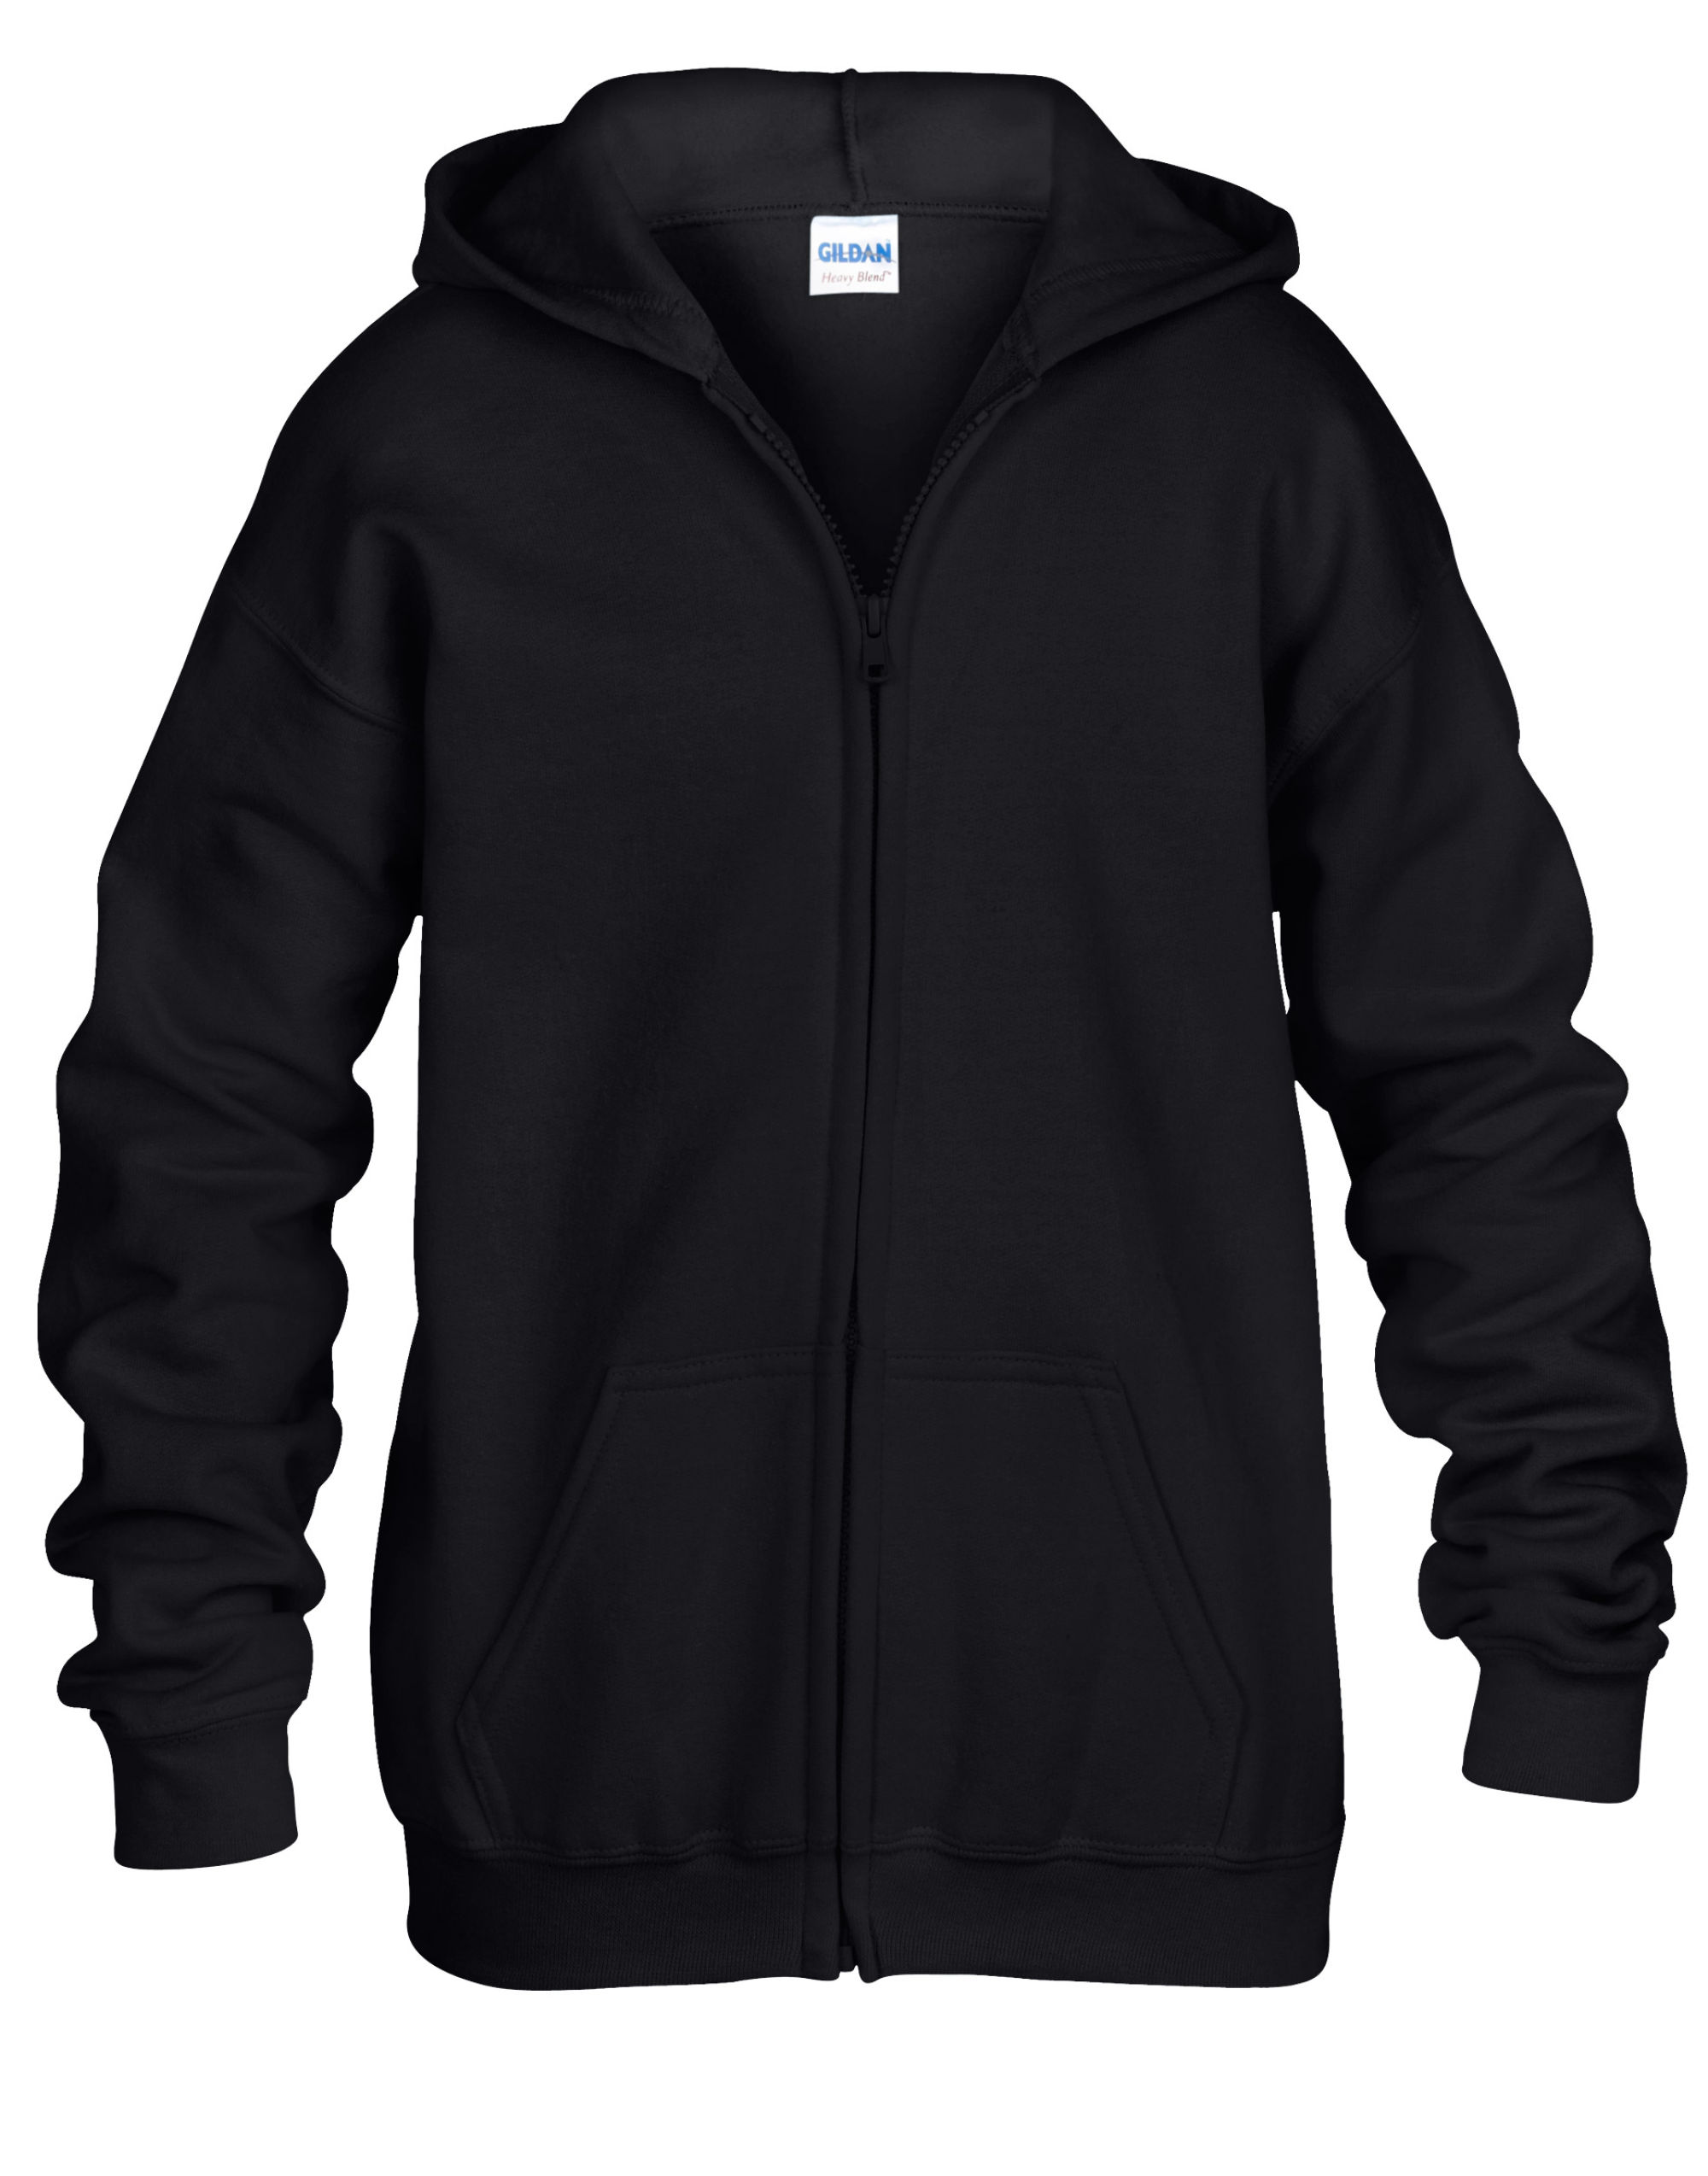 Heavy Blend Children's Full Zip Hooded...